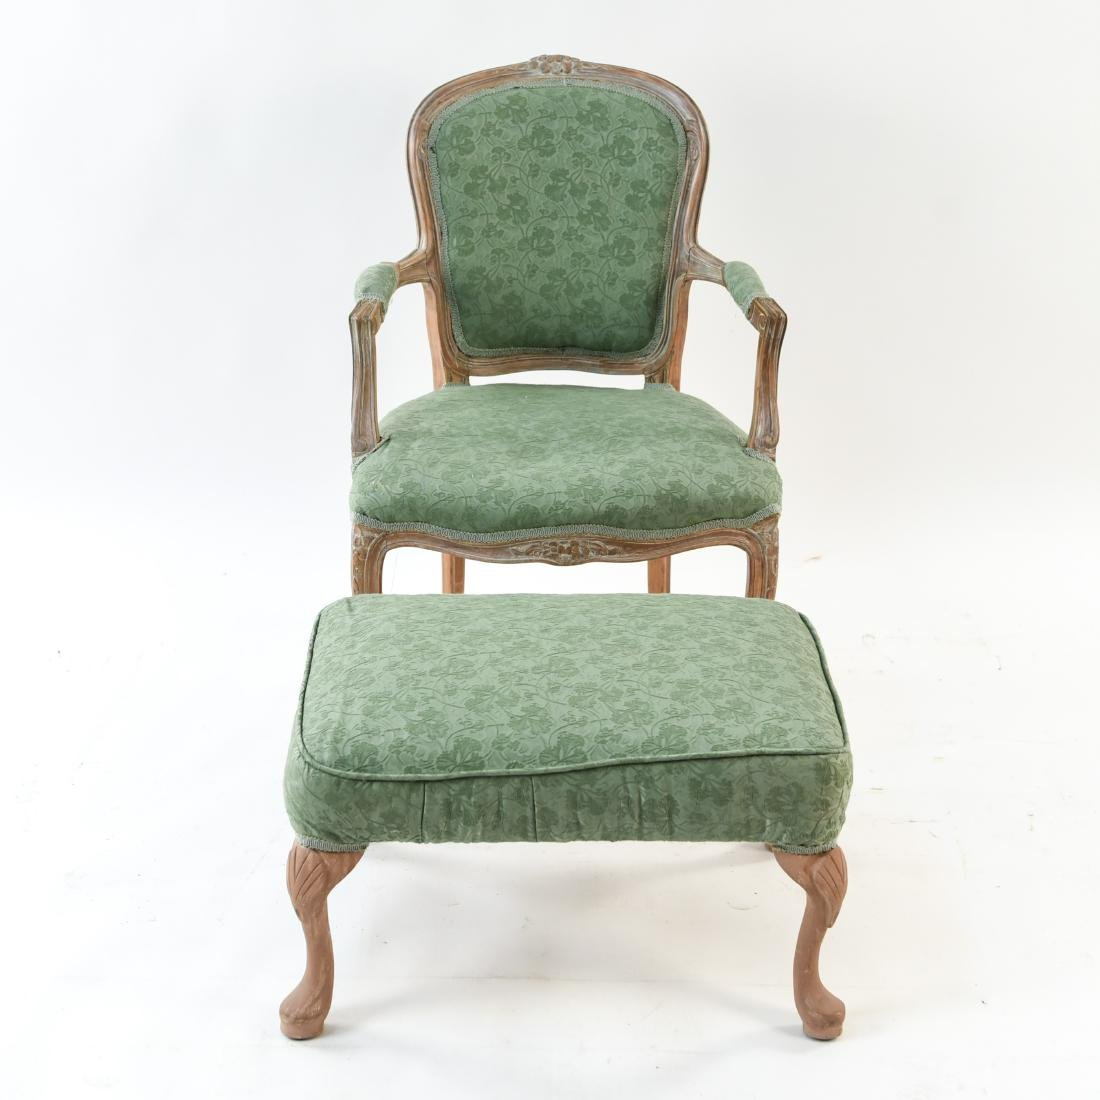 FRENCH STYLE FAUTEUIL CHAIR AND OTTOMAN